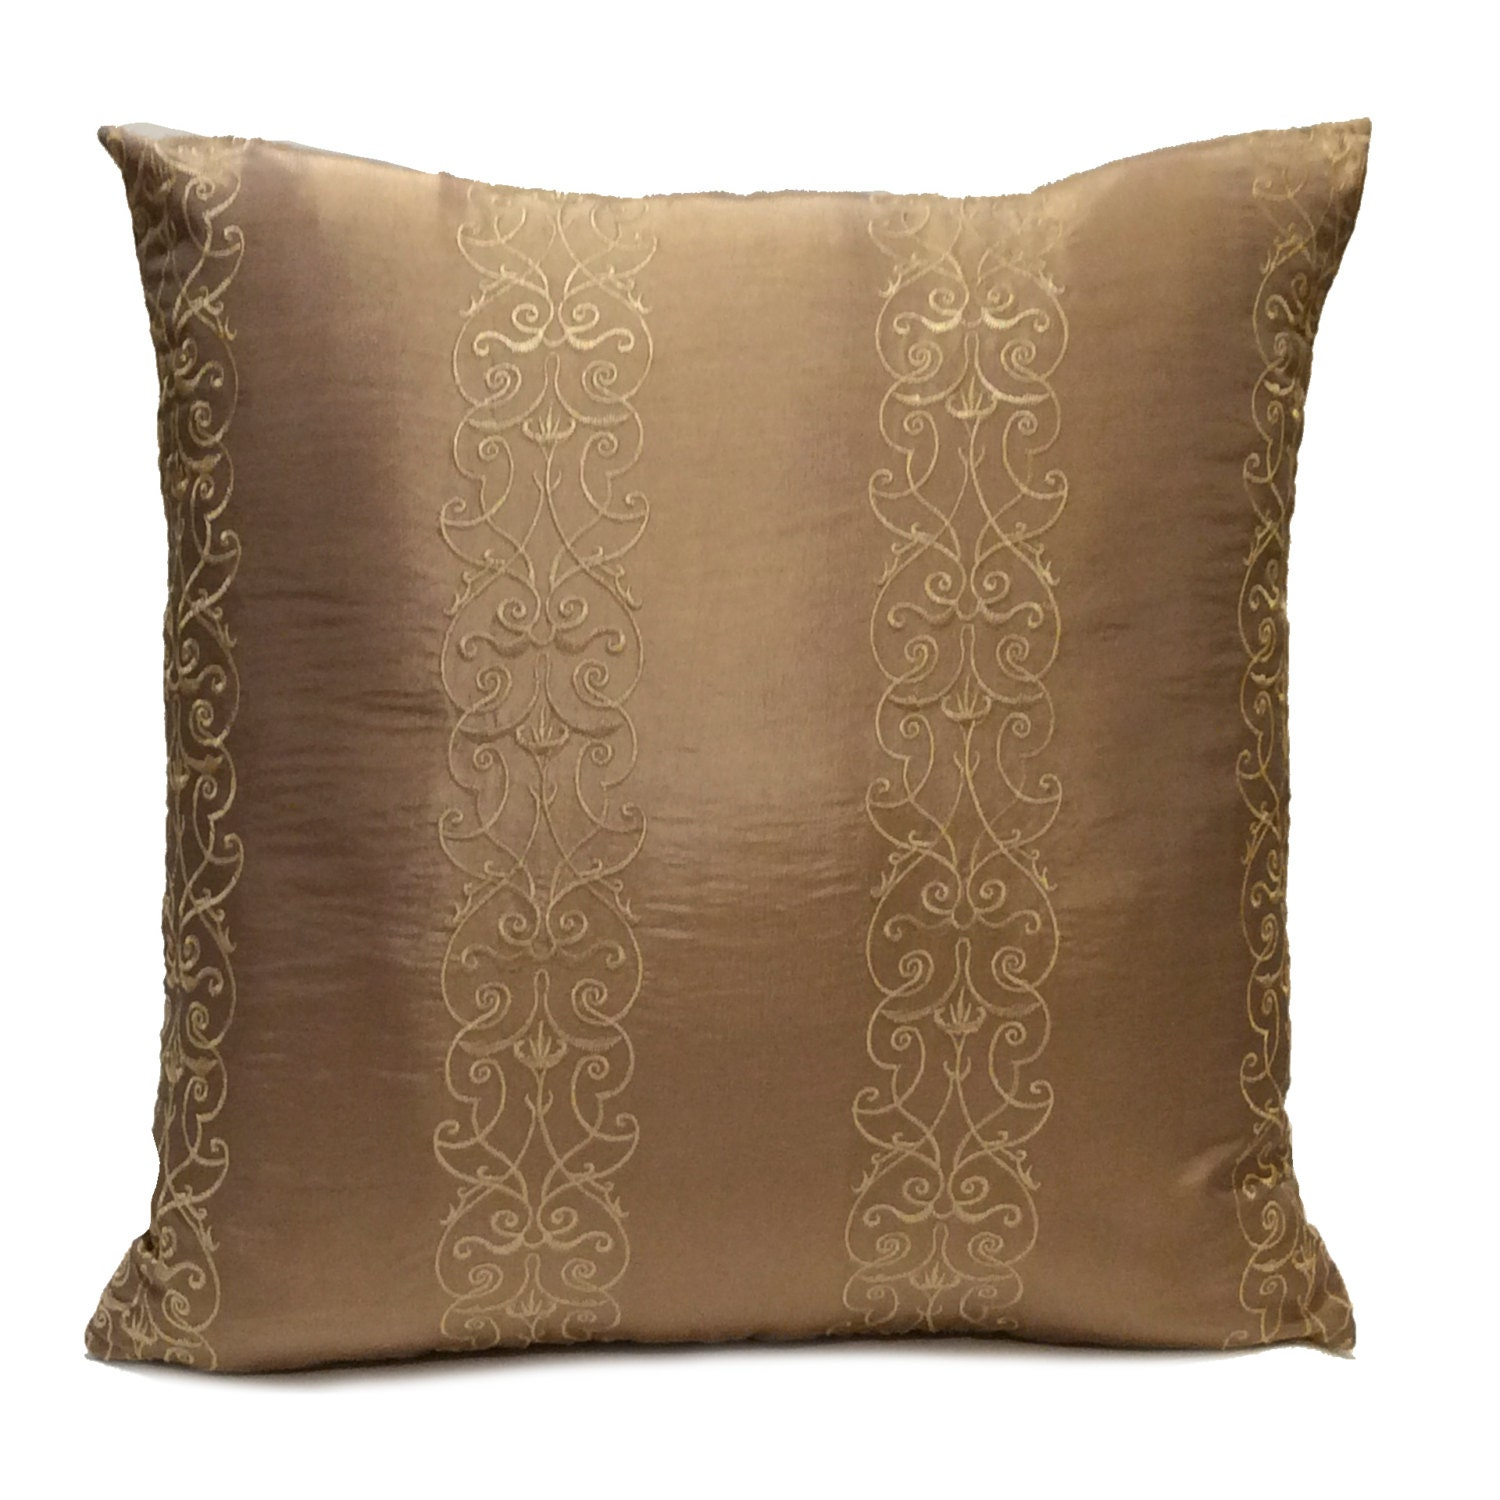 Dark Brown Throw Pillow : Light Brown Dark Tan Pillow Decorative Throw Pillow Cover